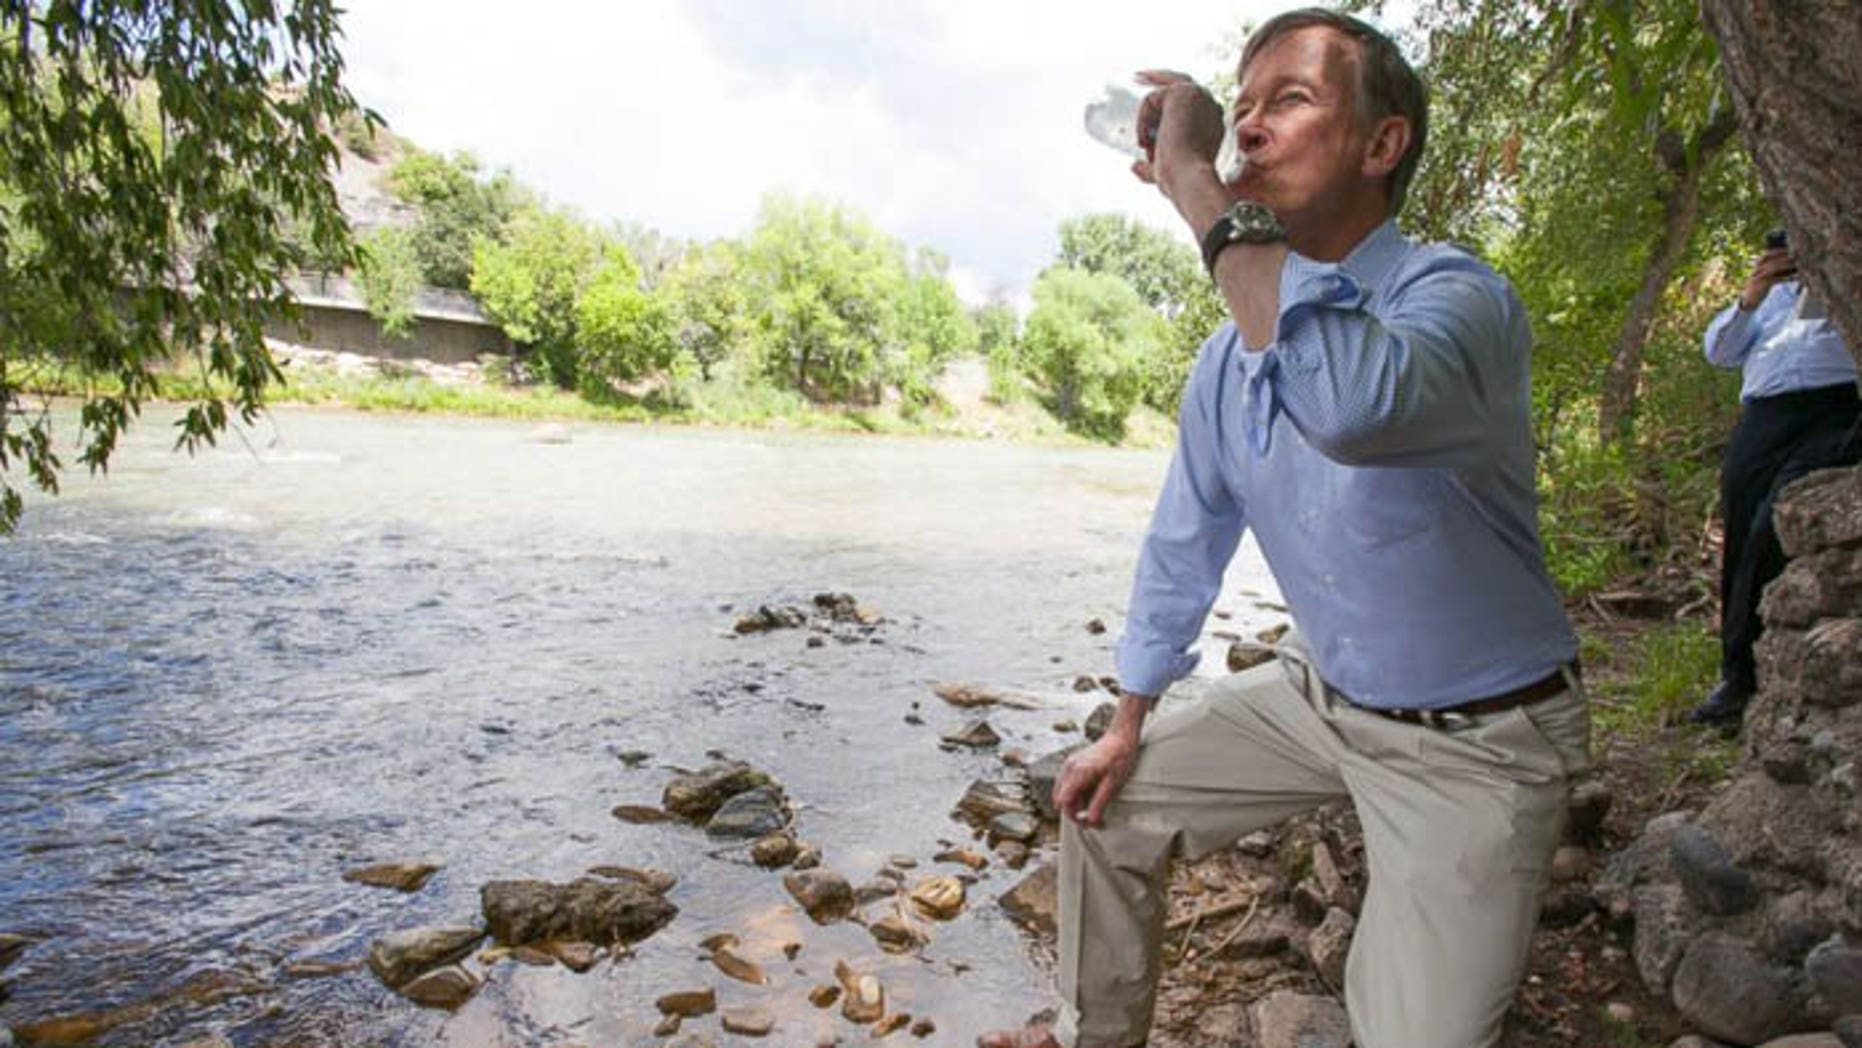 Colorado Gov. John Hickenlooper drank water straight from the contaminated river to prove a point, but critics said he proved he's crazy. (AP via Durango Herald)